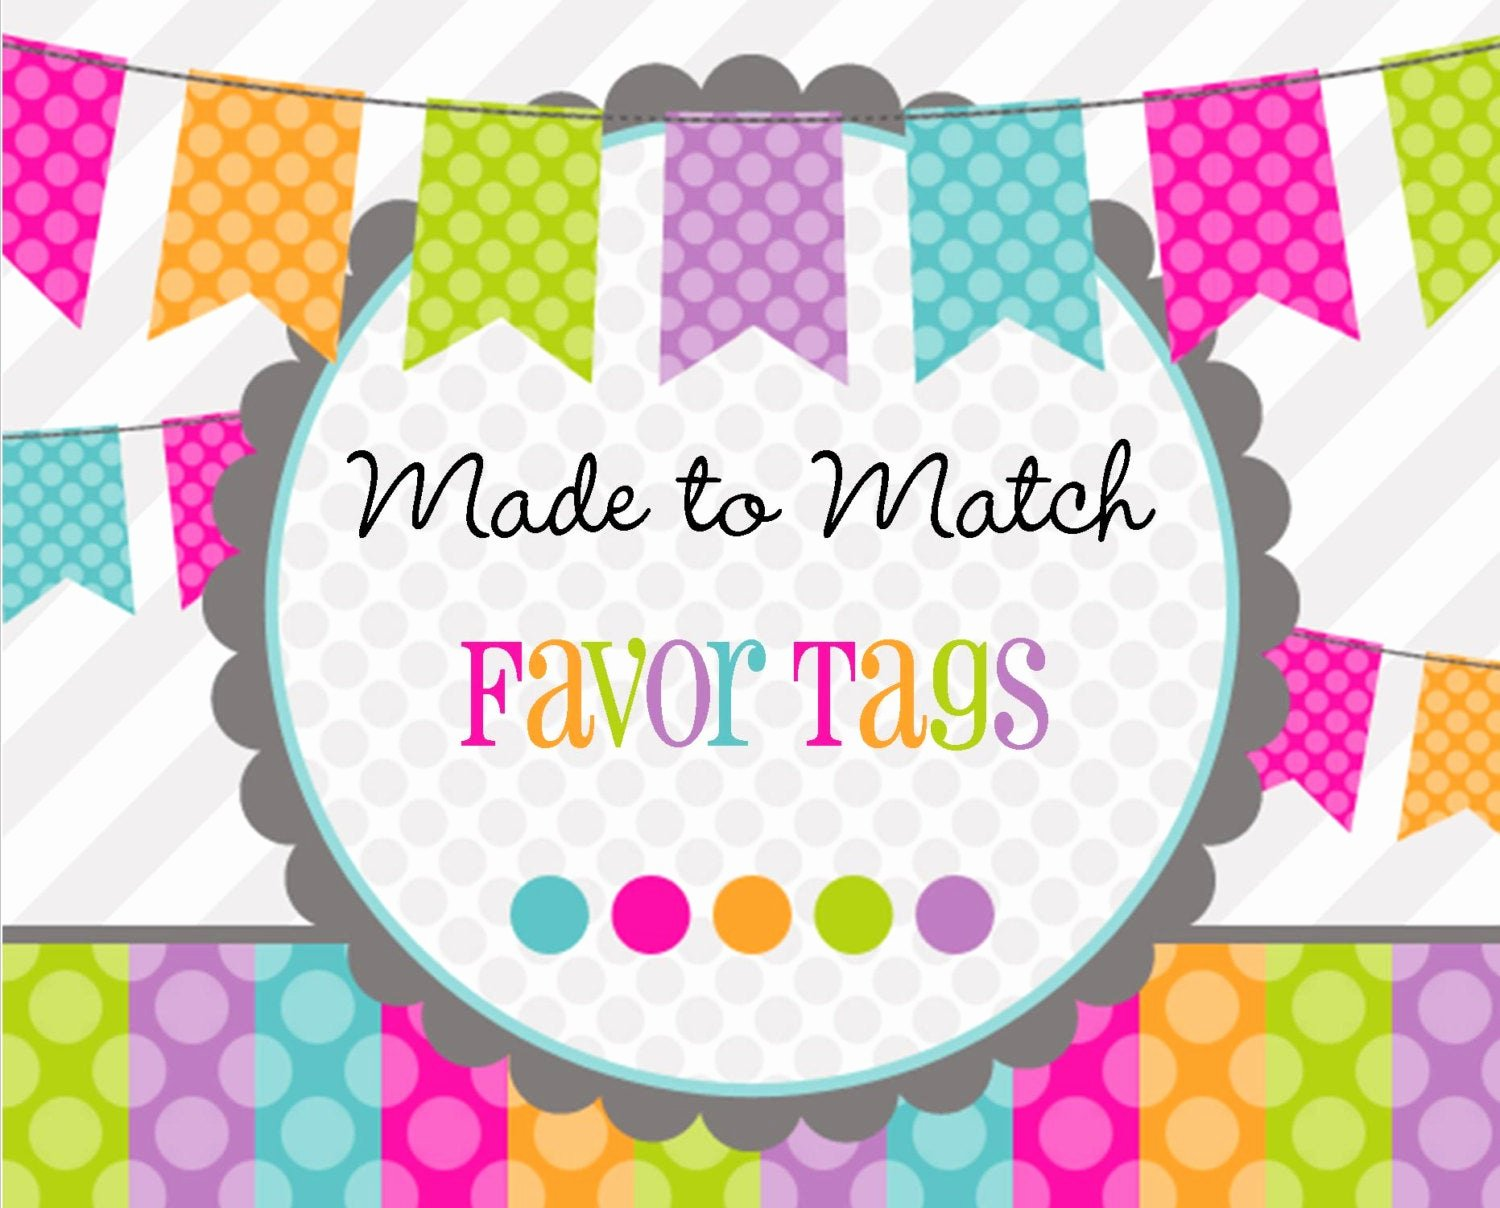 Printable Baby Shower Favor Tags Unique Made 2 Match Printable Favor Tags Birthday Baby Shower